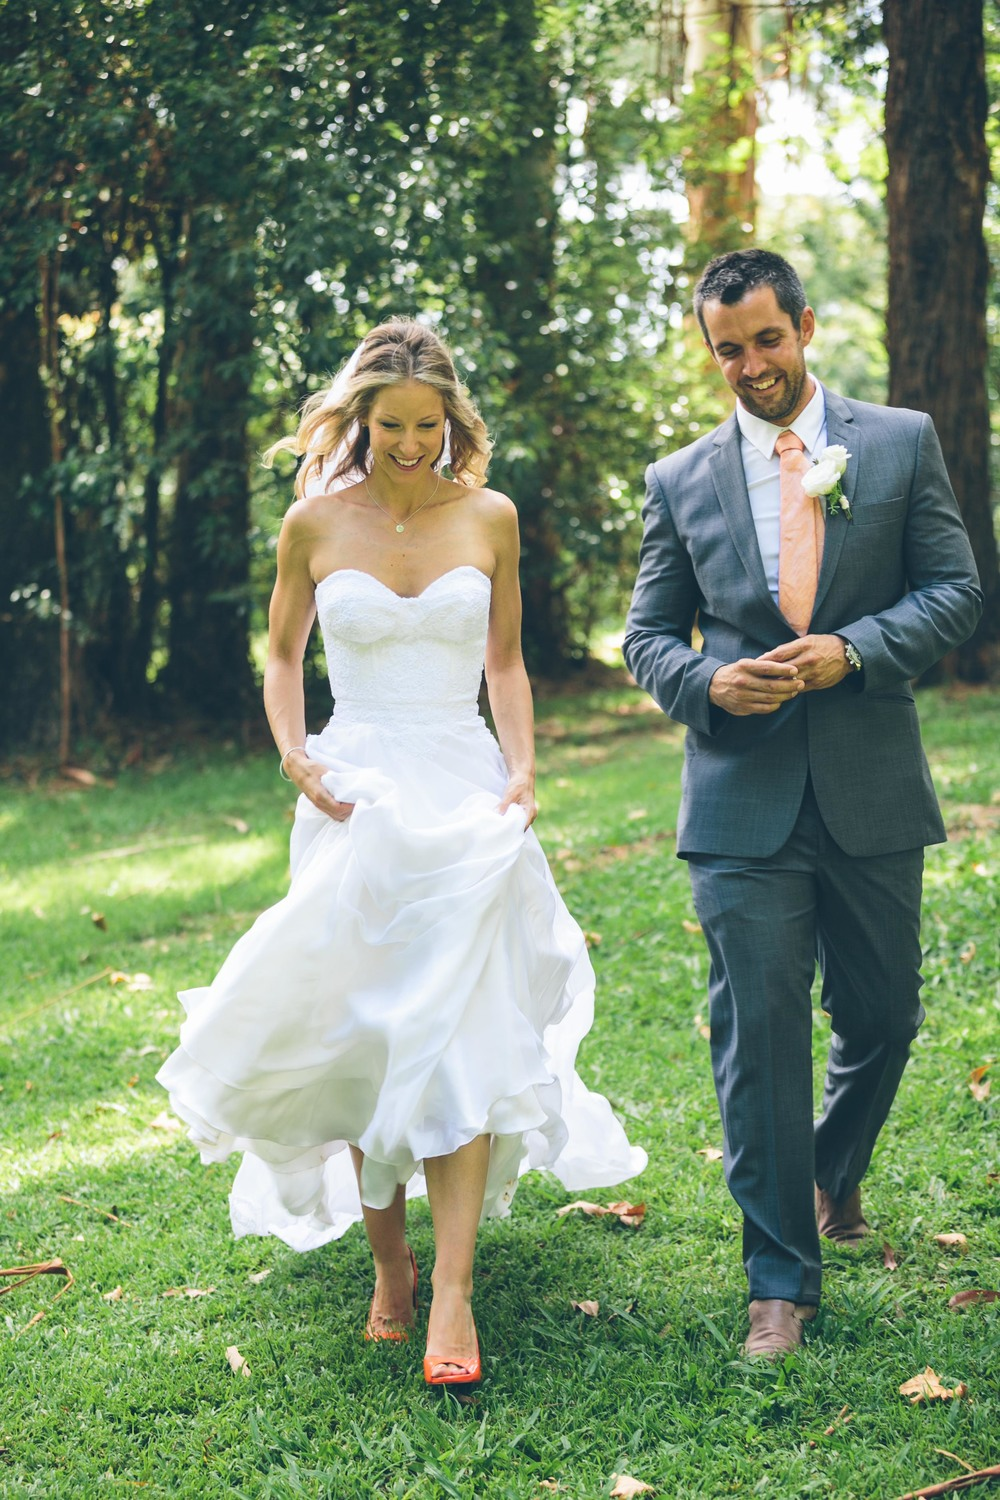 Debbie and Matt wedding, Deux Belettes, Byron Bay Hinterland by Milton Gan Photography 099.jpg